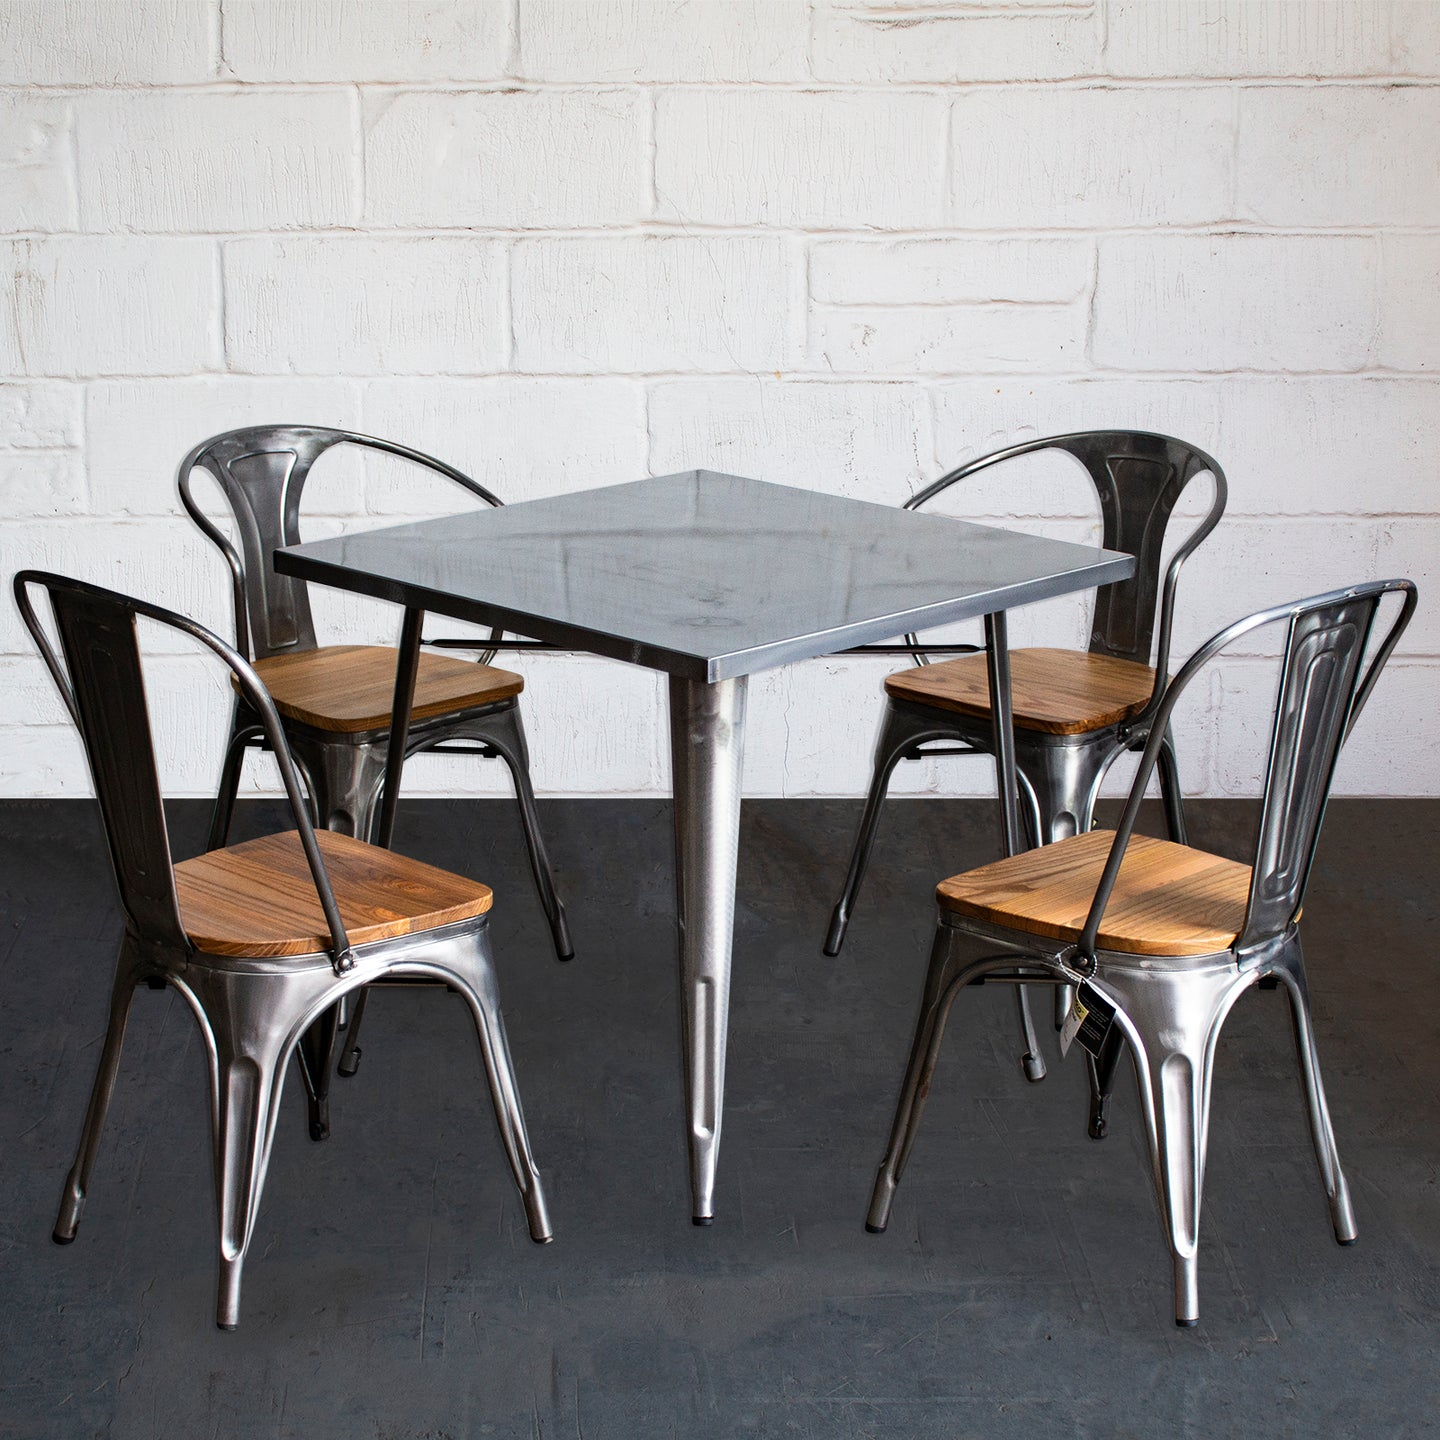 5PC Belvedere Table Florence & Palermo Chairs Set - Steel